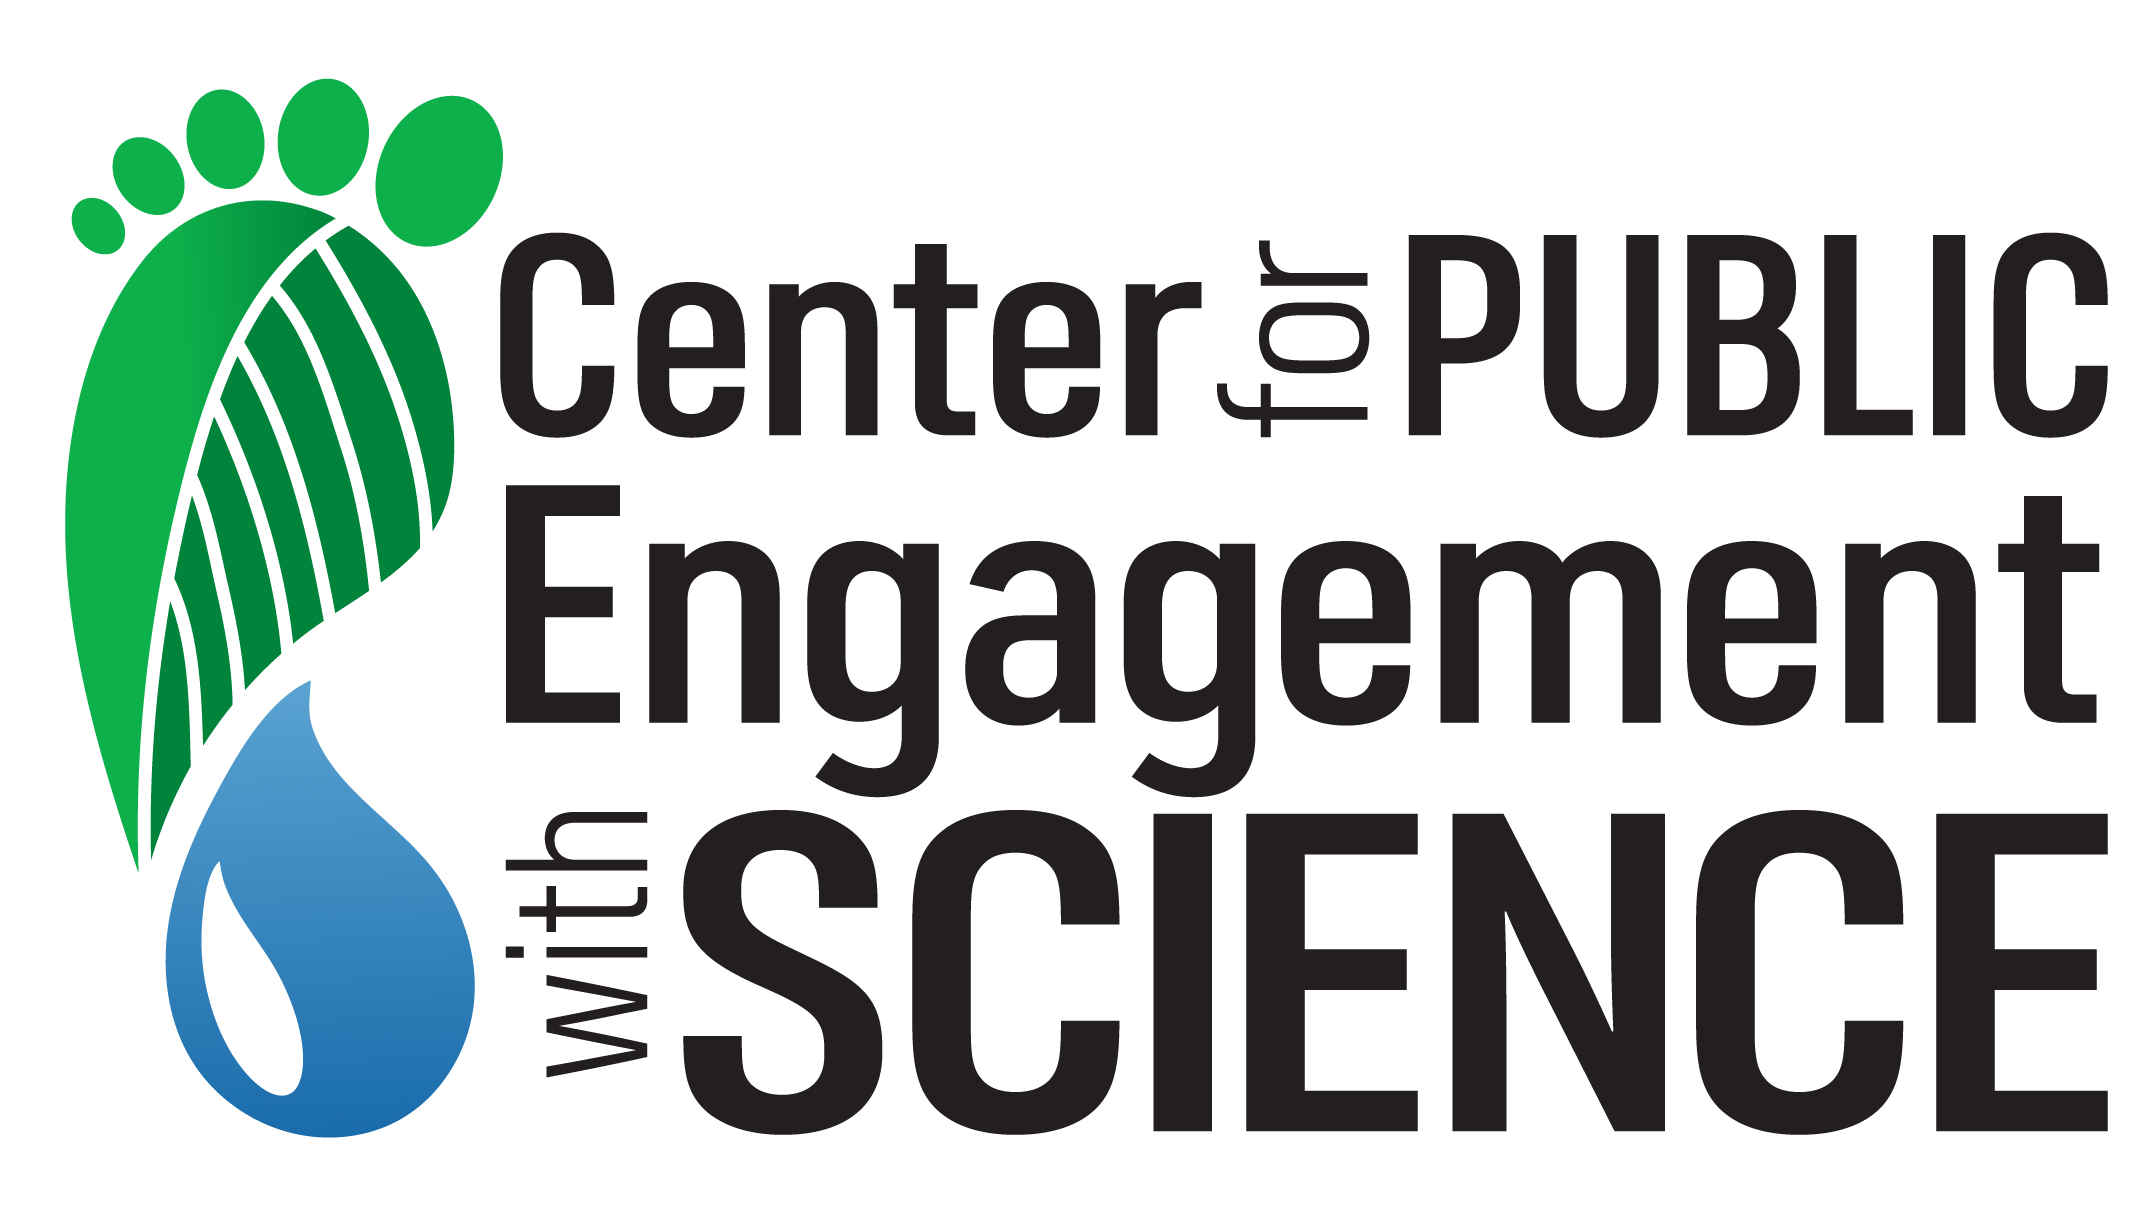 The Center for Public Engagement with Science, located at the University of North Carolina at Chapel Hill's Institute for the Environment, oversees the At Water's Edge training opportunity.